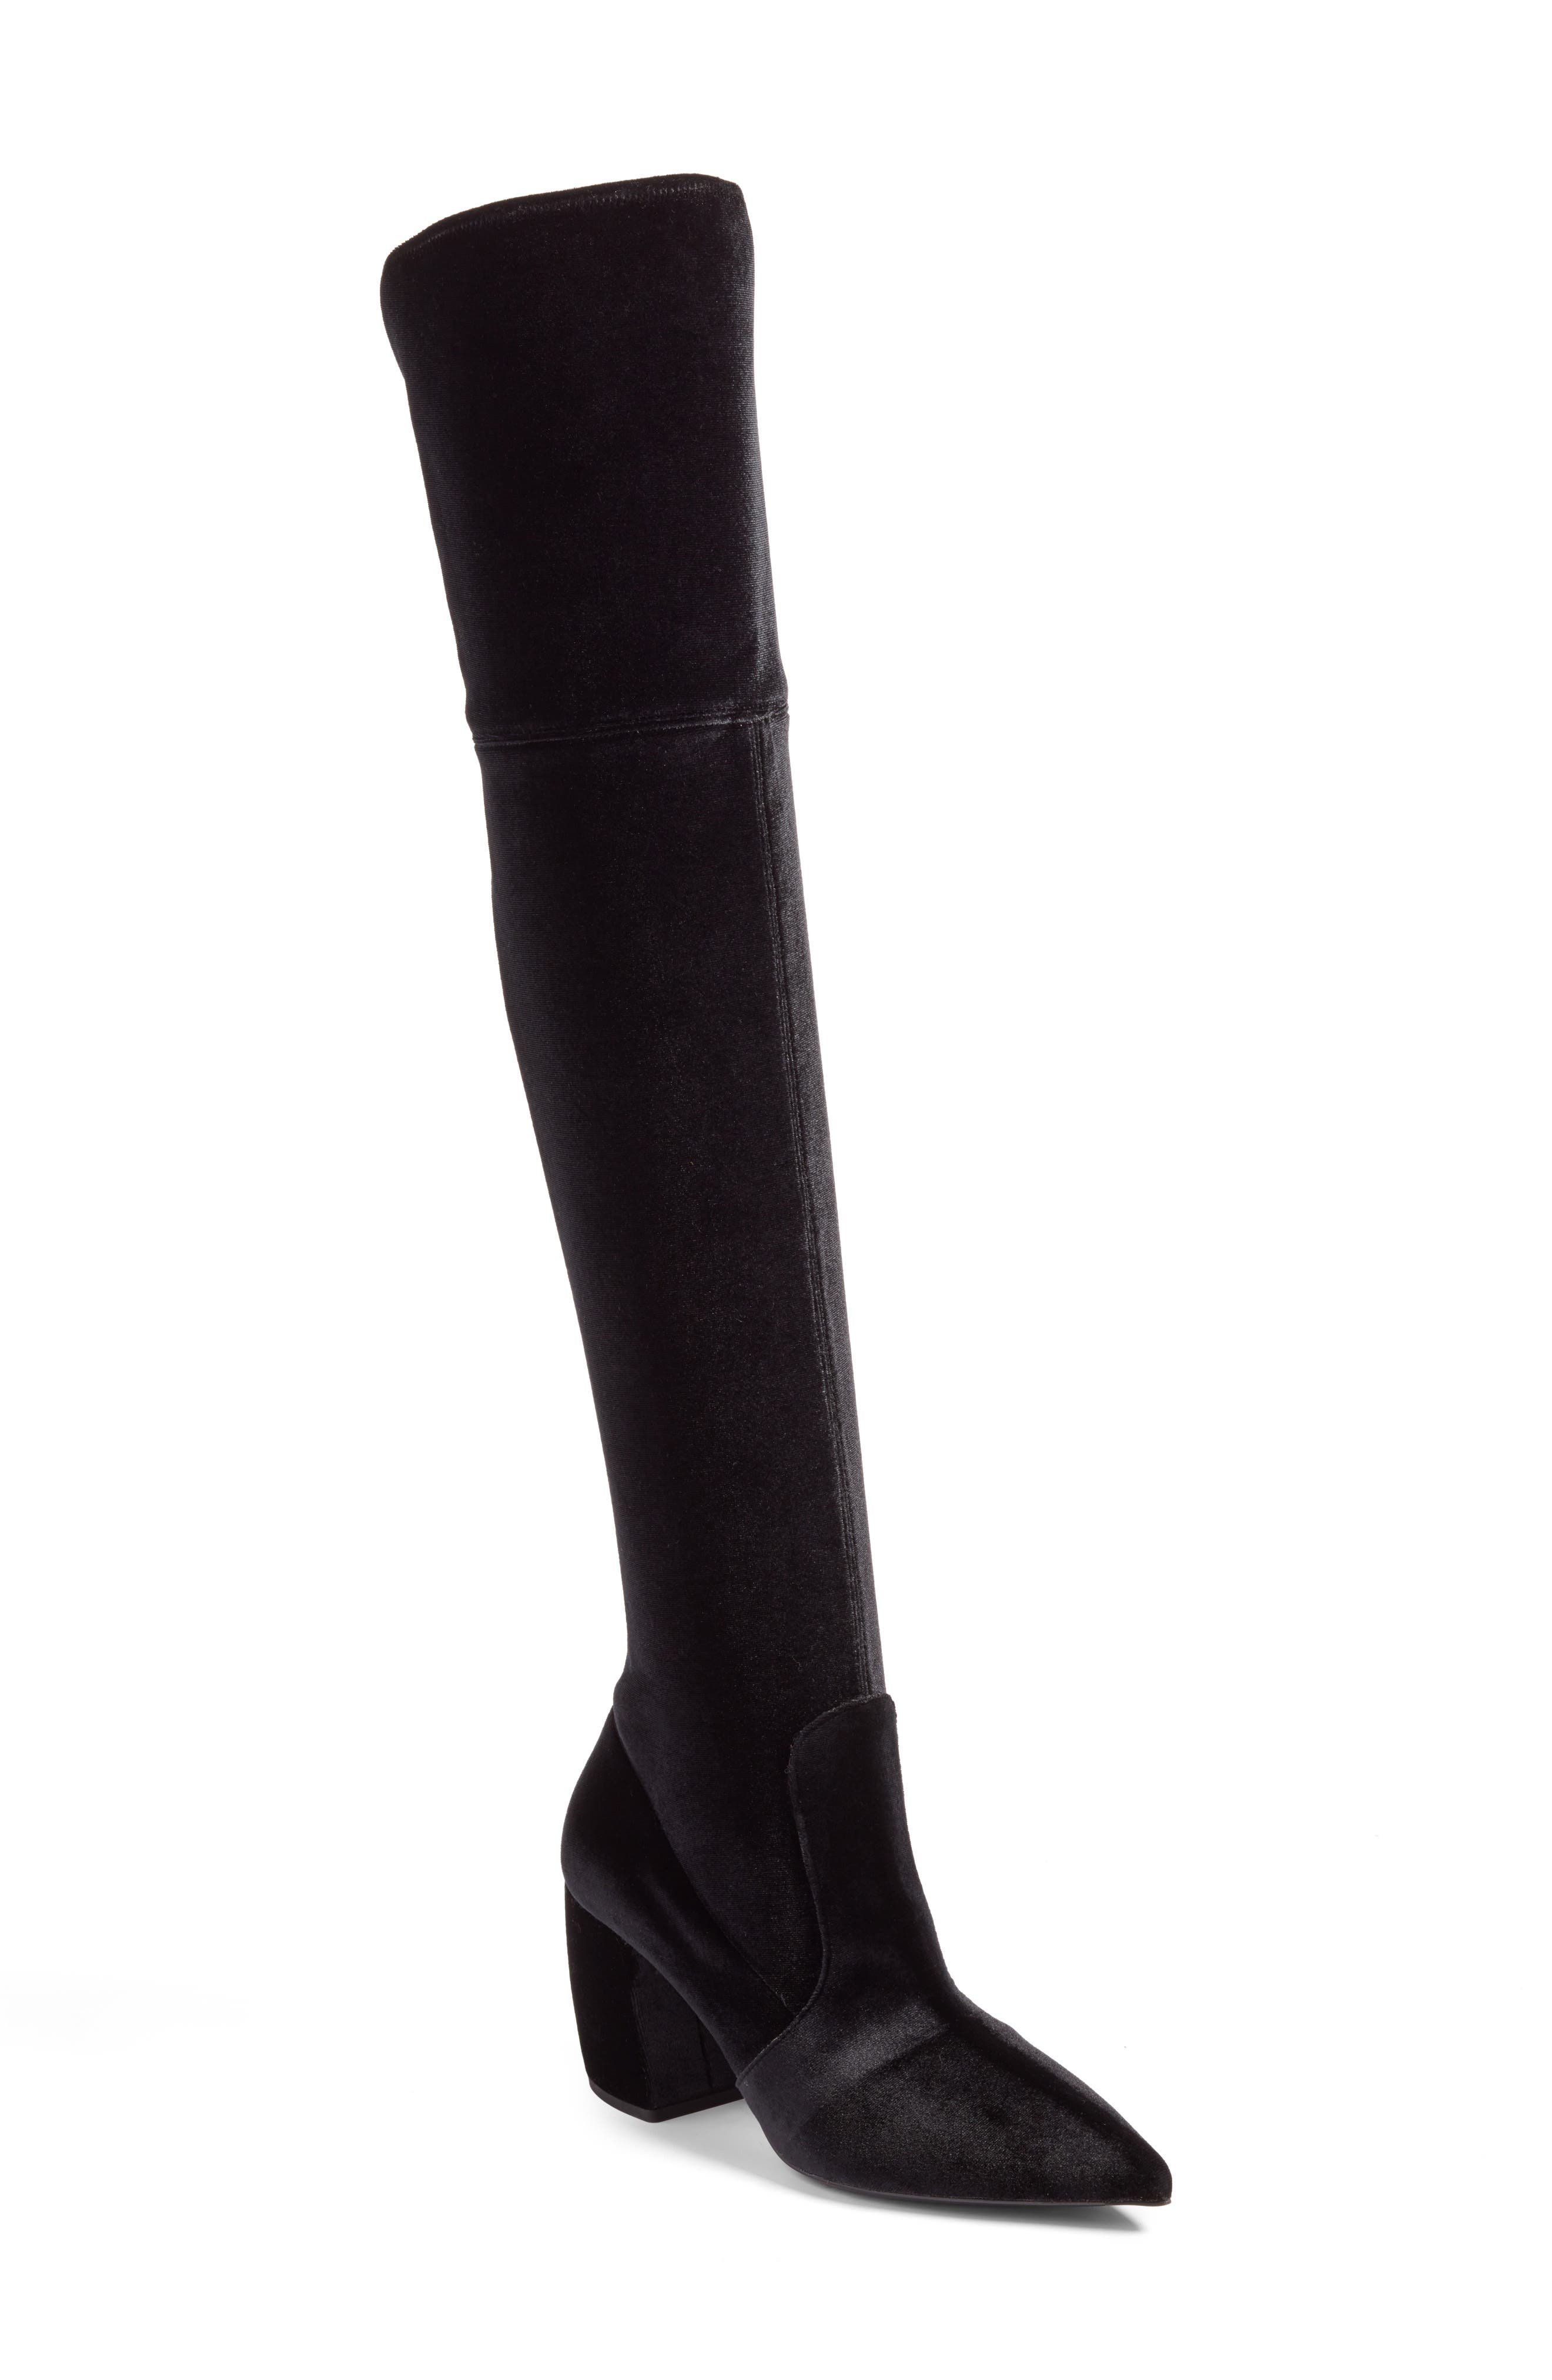 Over the Knee Boot,                             Main thumbnail 1, color,                             Black